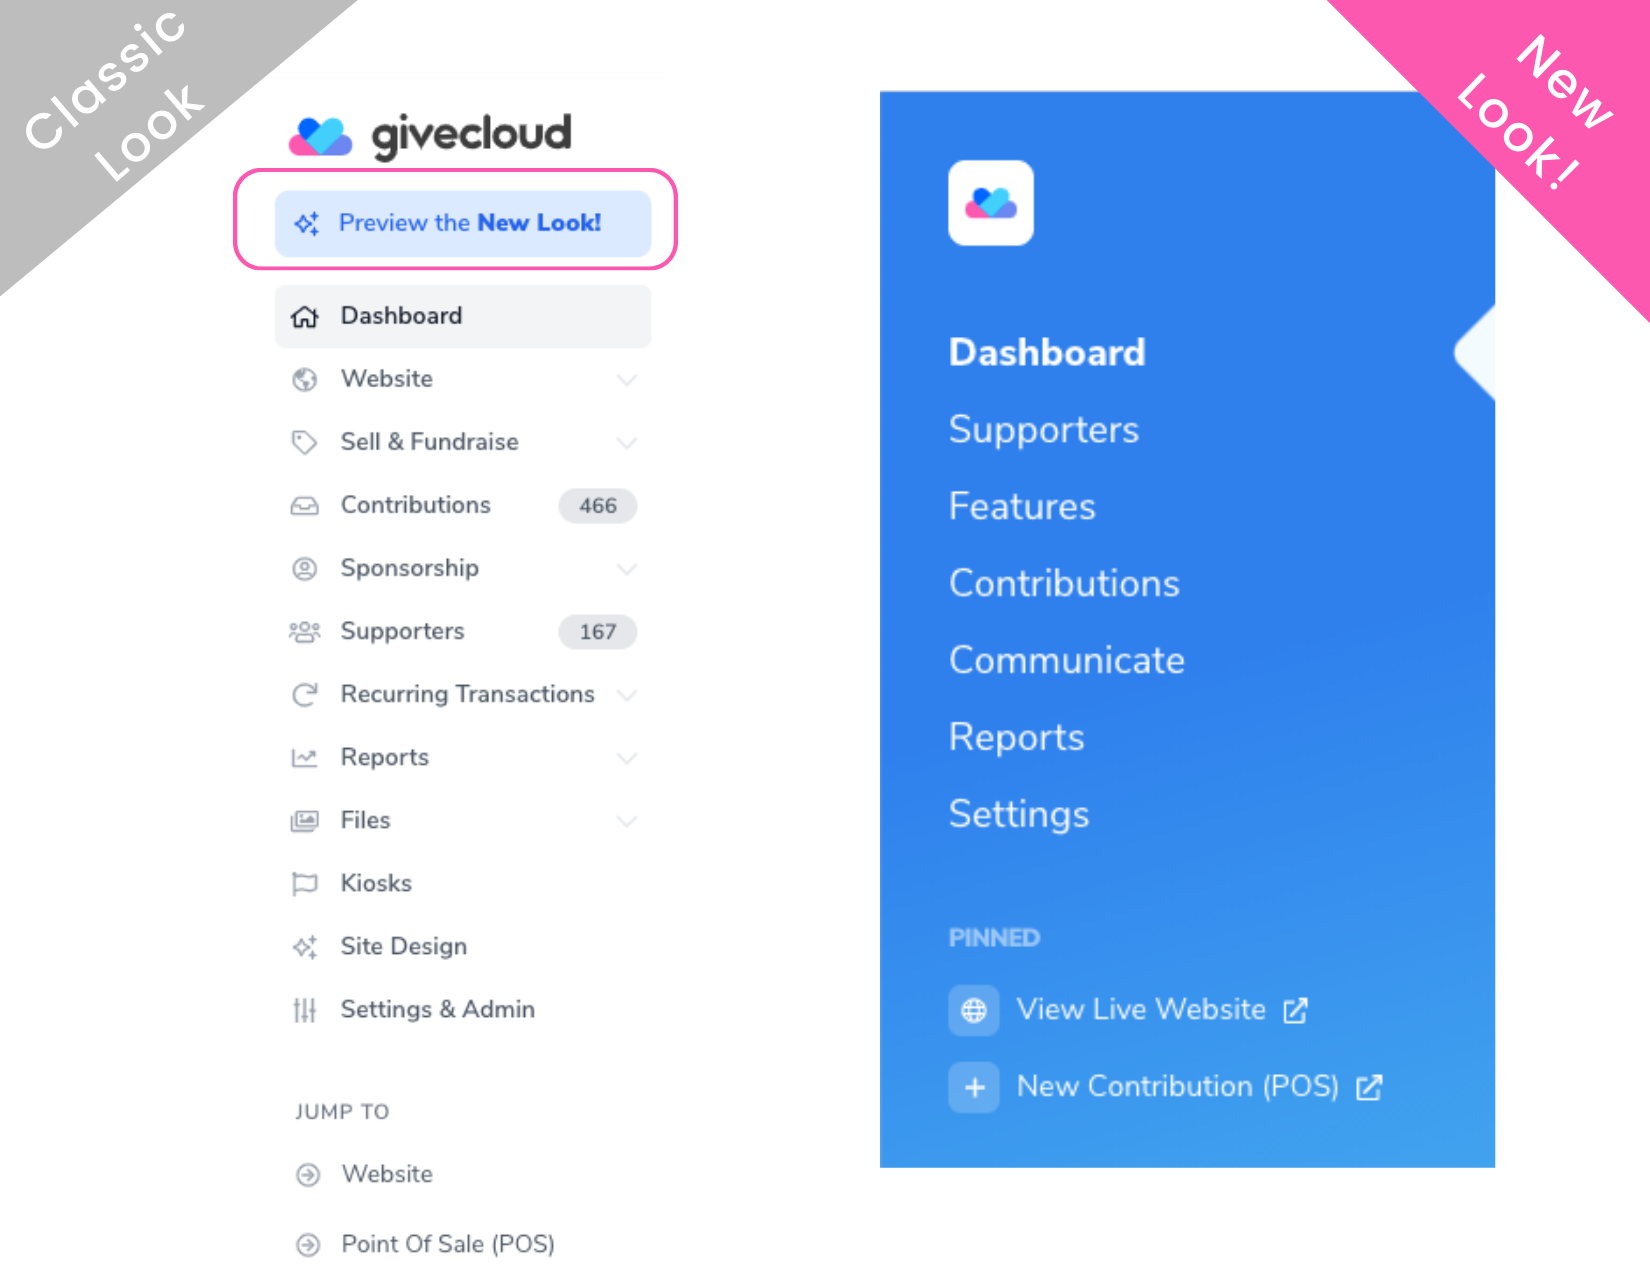 Givecloud's New UI Design